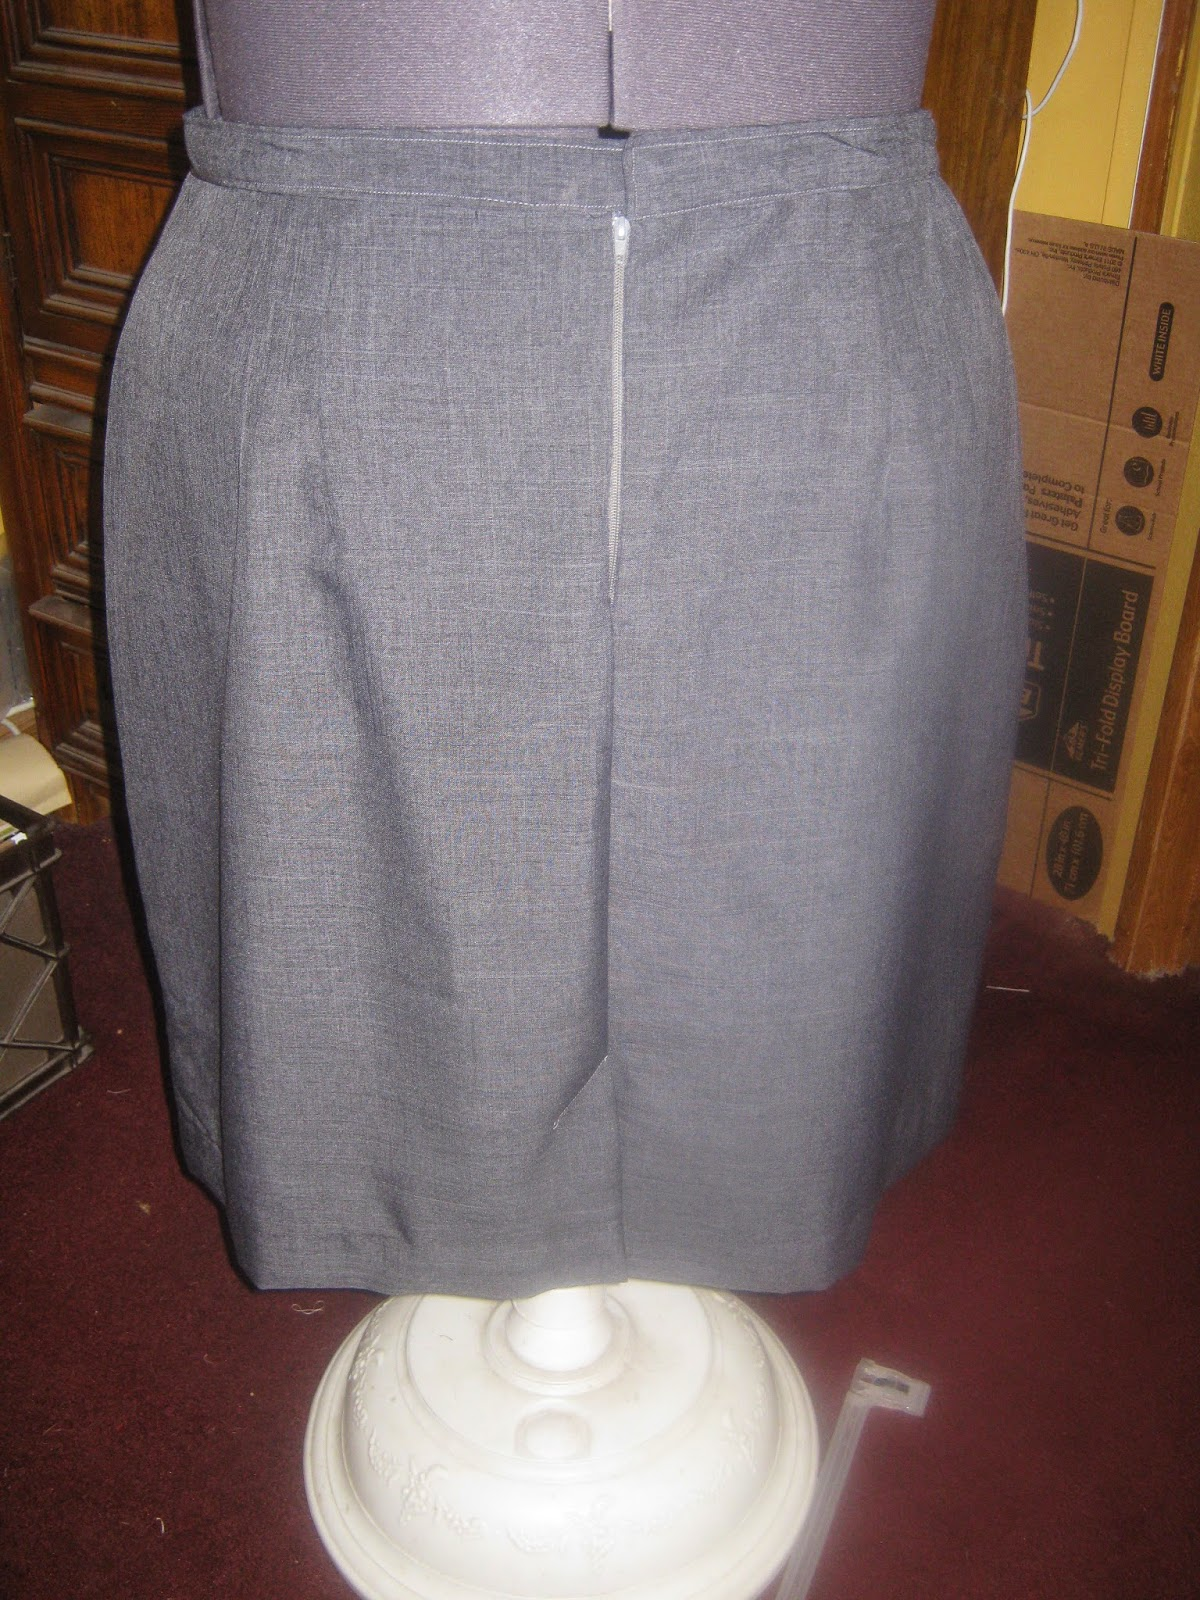 McCall's 3588 Straight Skirt grey suiting back view www.sewplus.blogspot.com